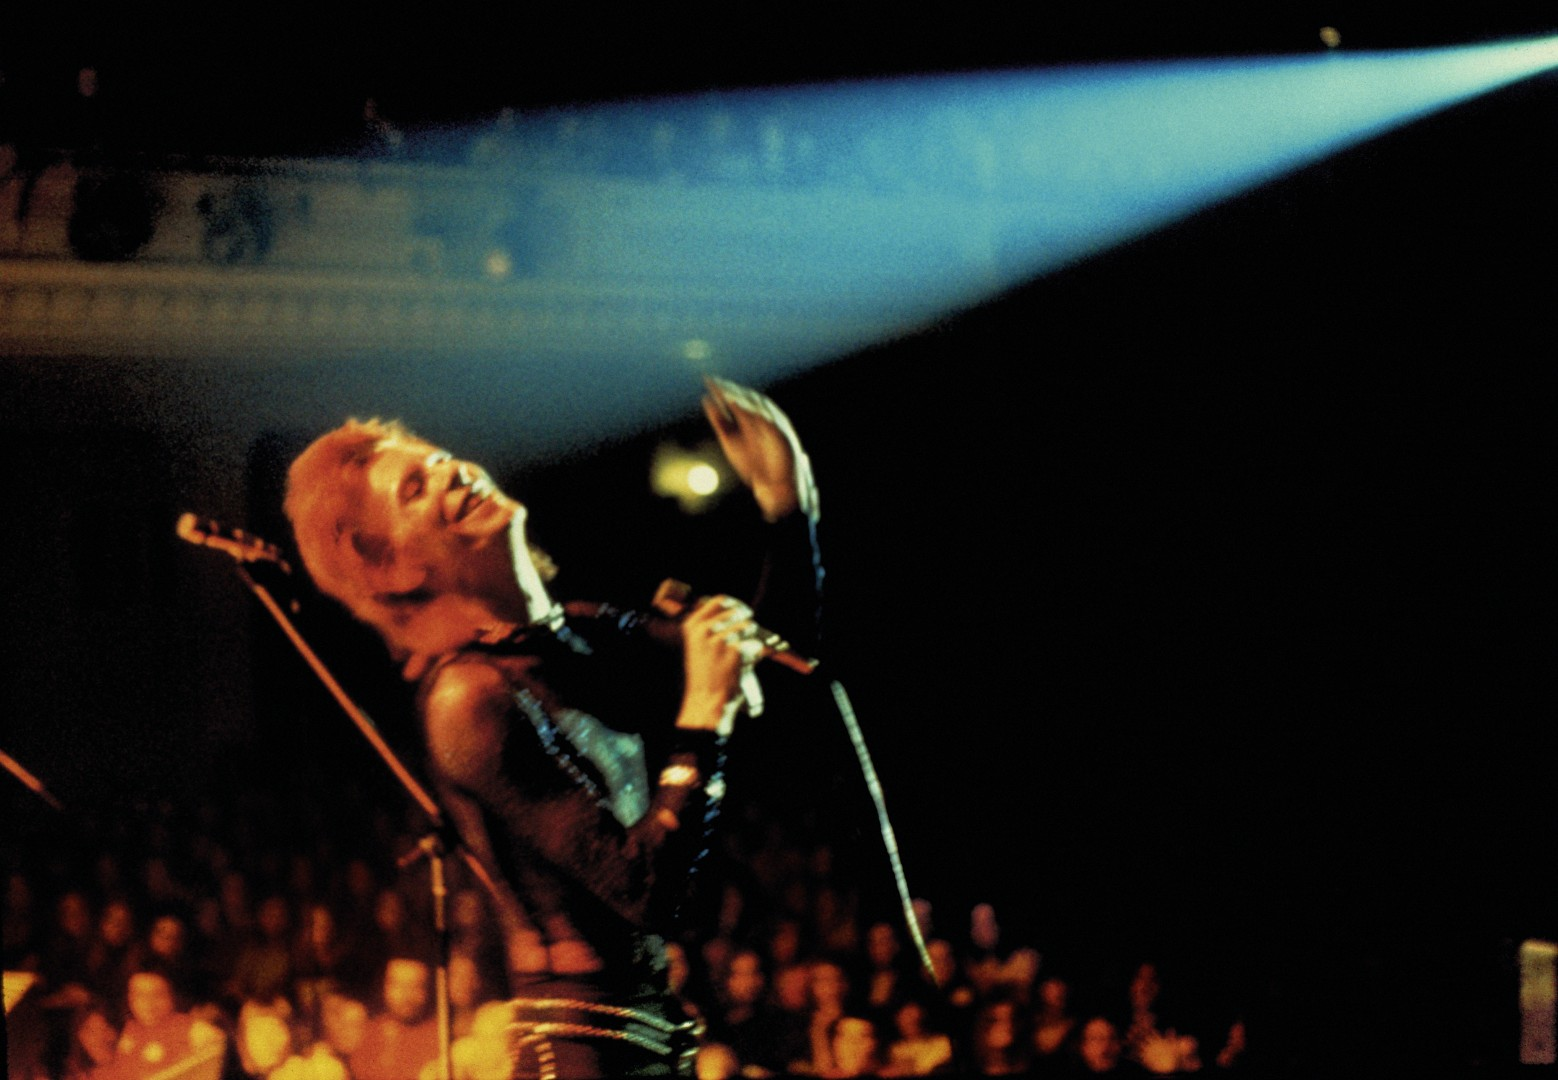 David Bowie on stage in Bournemouth during the Ziggy Stardust tour